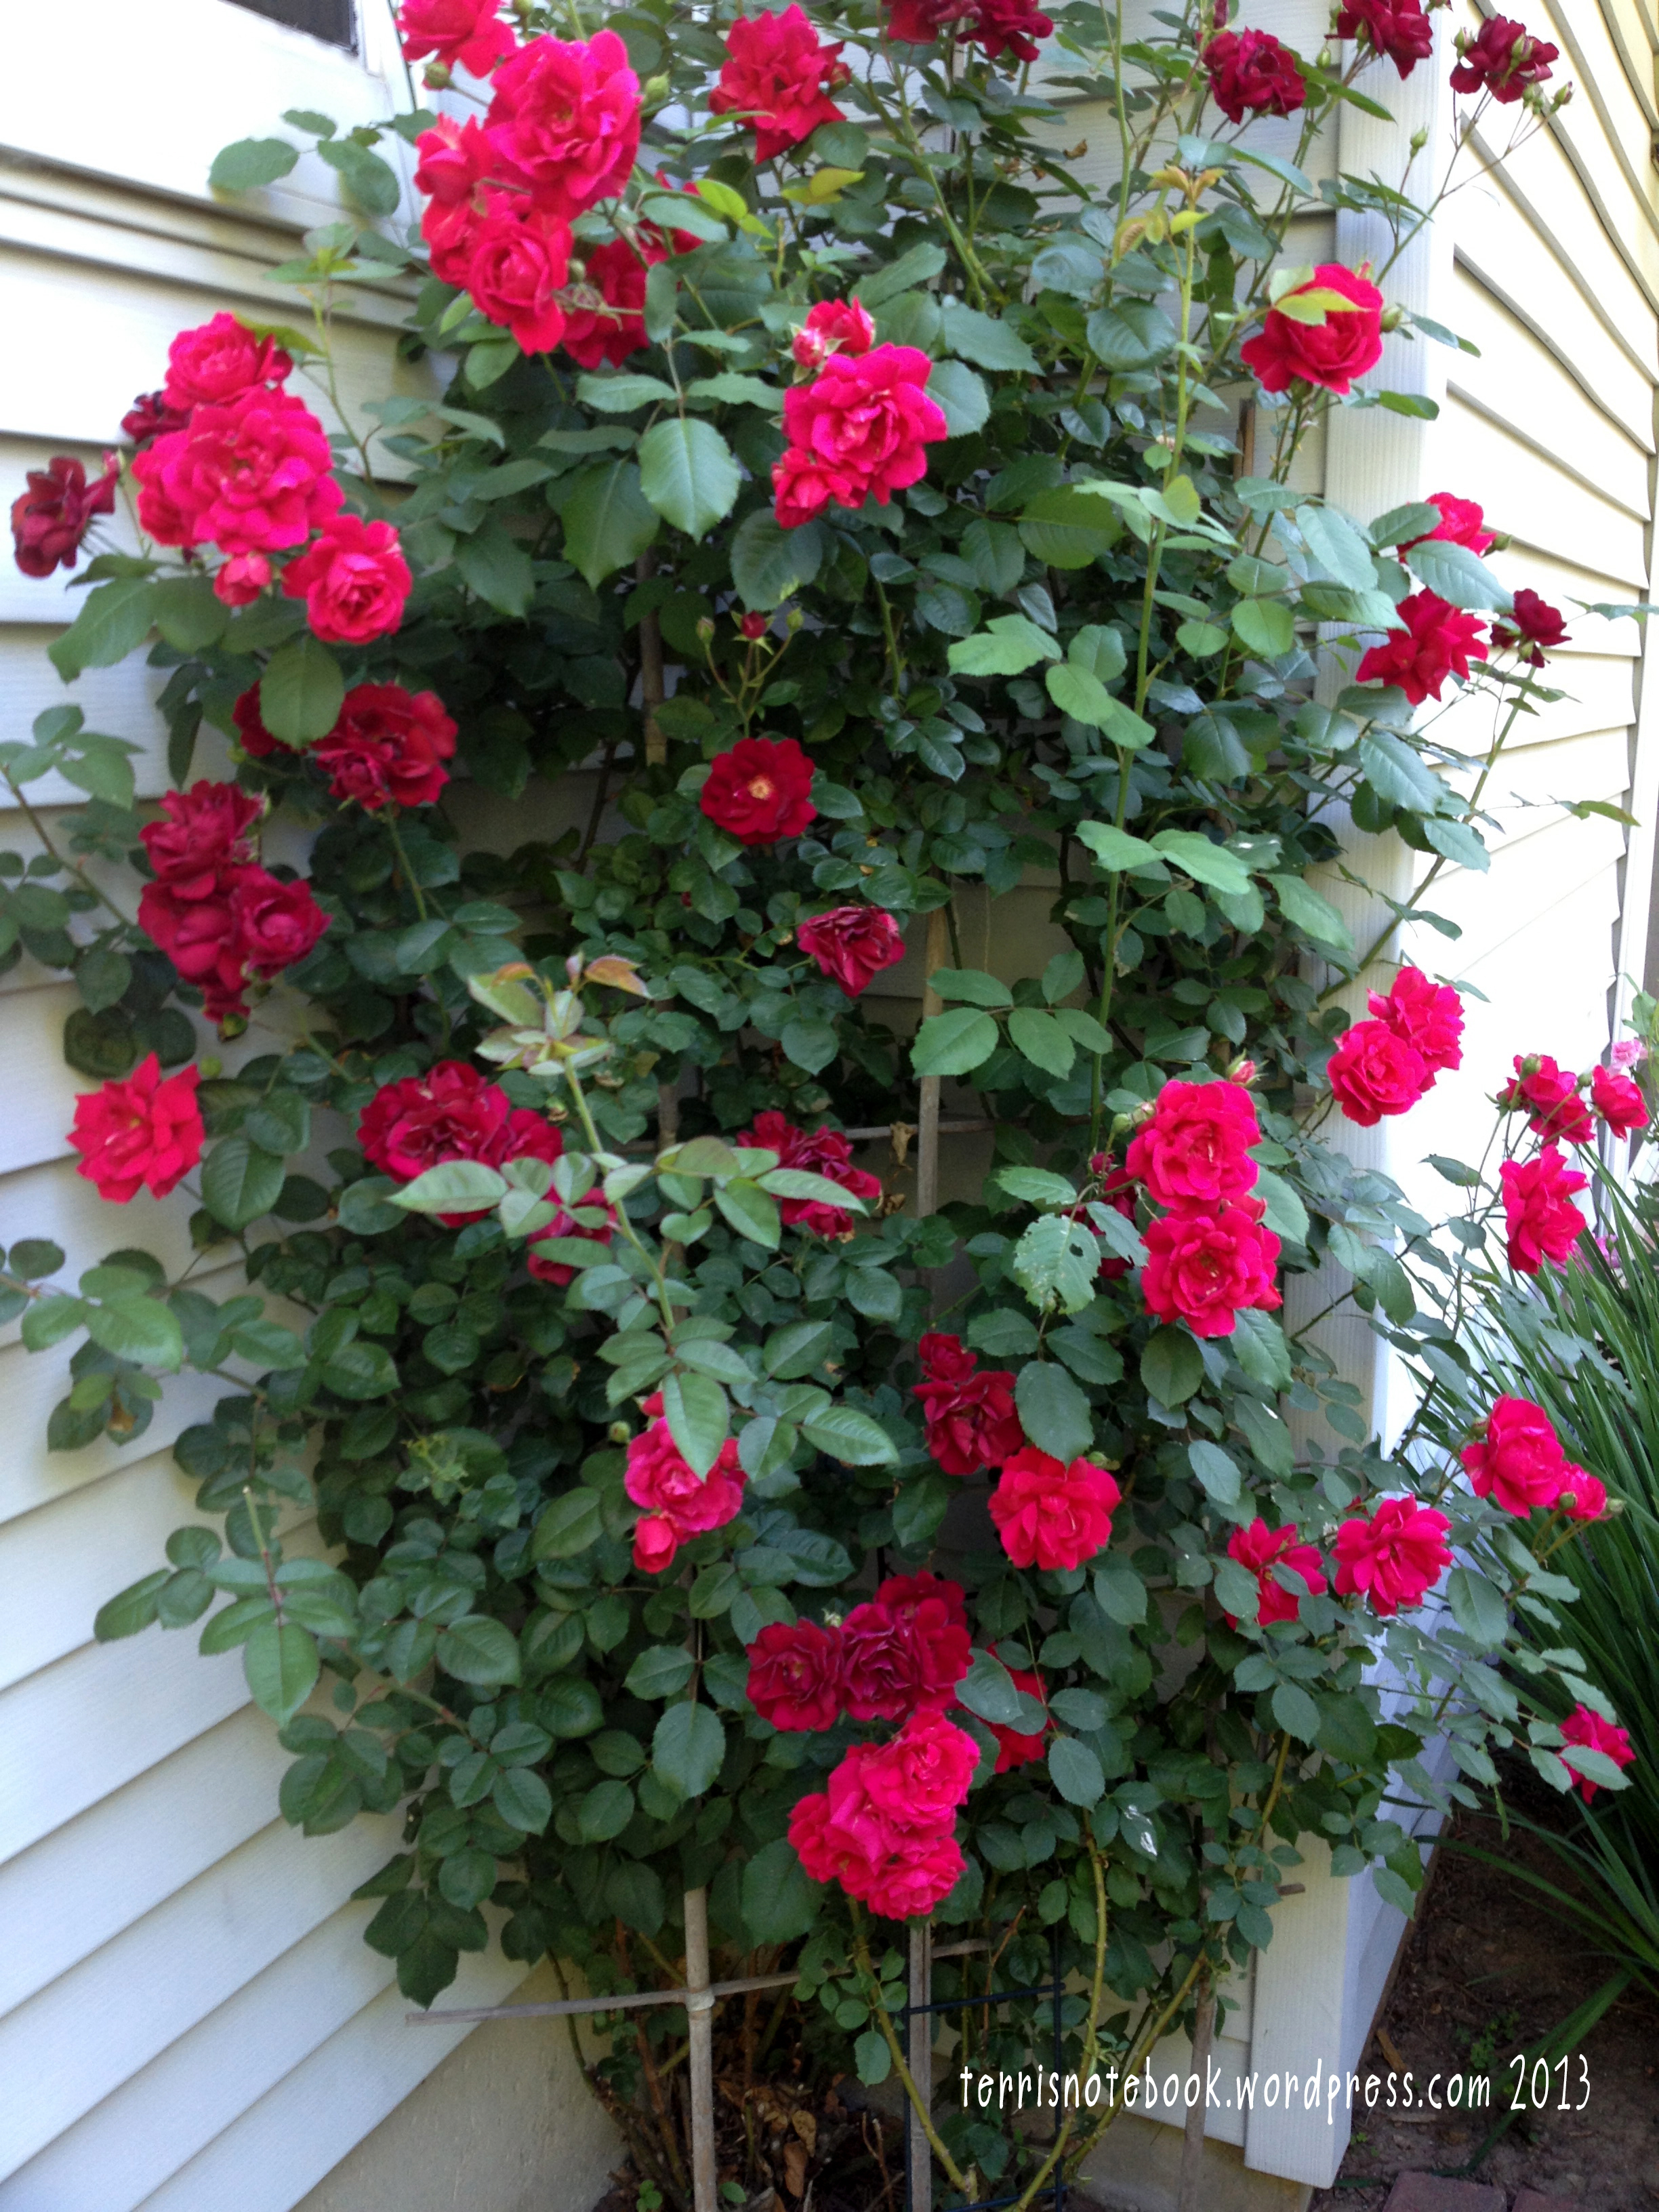 june red roses - Most Beautiful Rose Gardens In The World